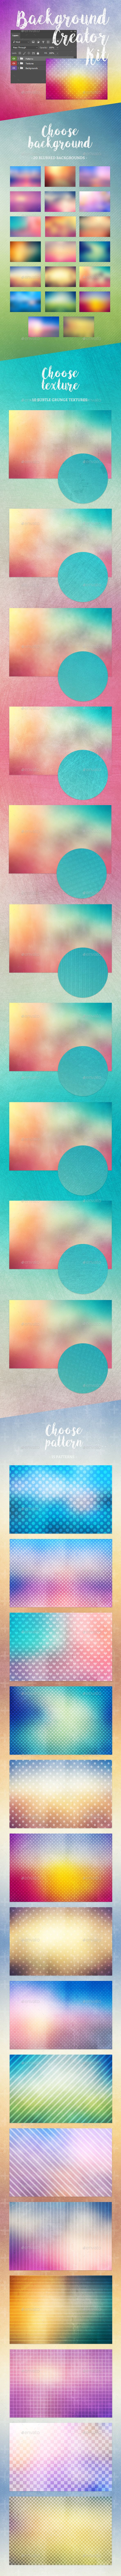 Background Creator Kit - #Abstract #Backgrounds Download here: https://graphicriver.net/item/background-creator-kit/20161057?ref=alena994